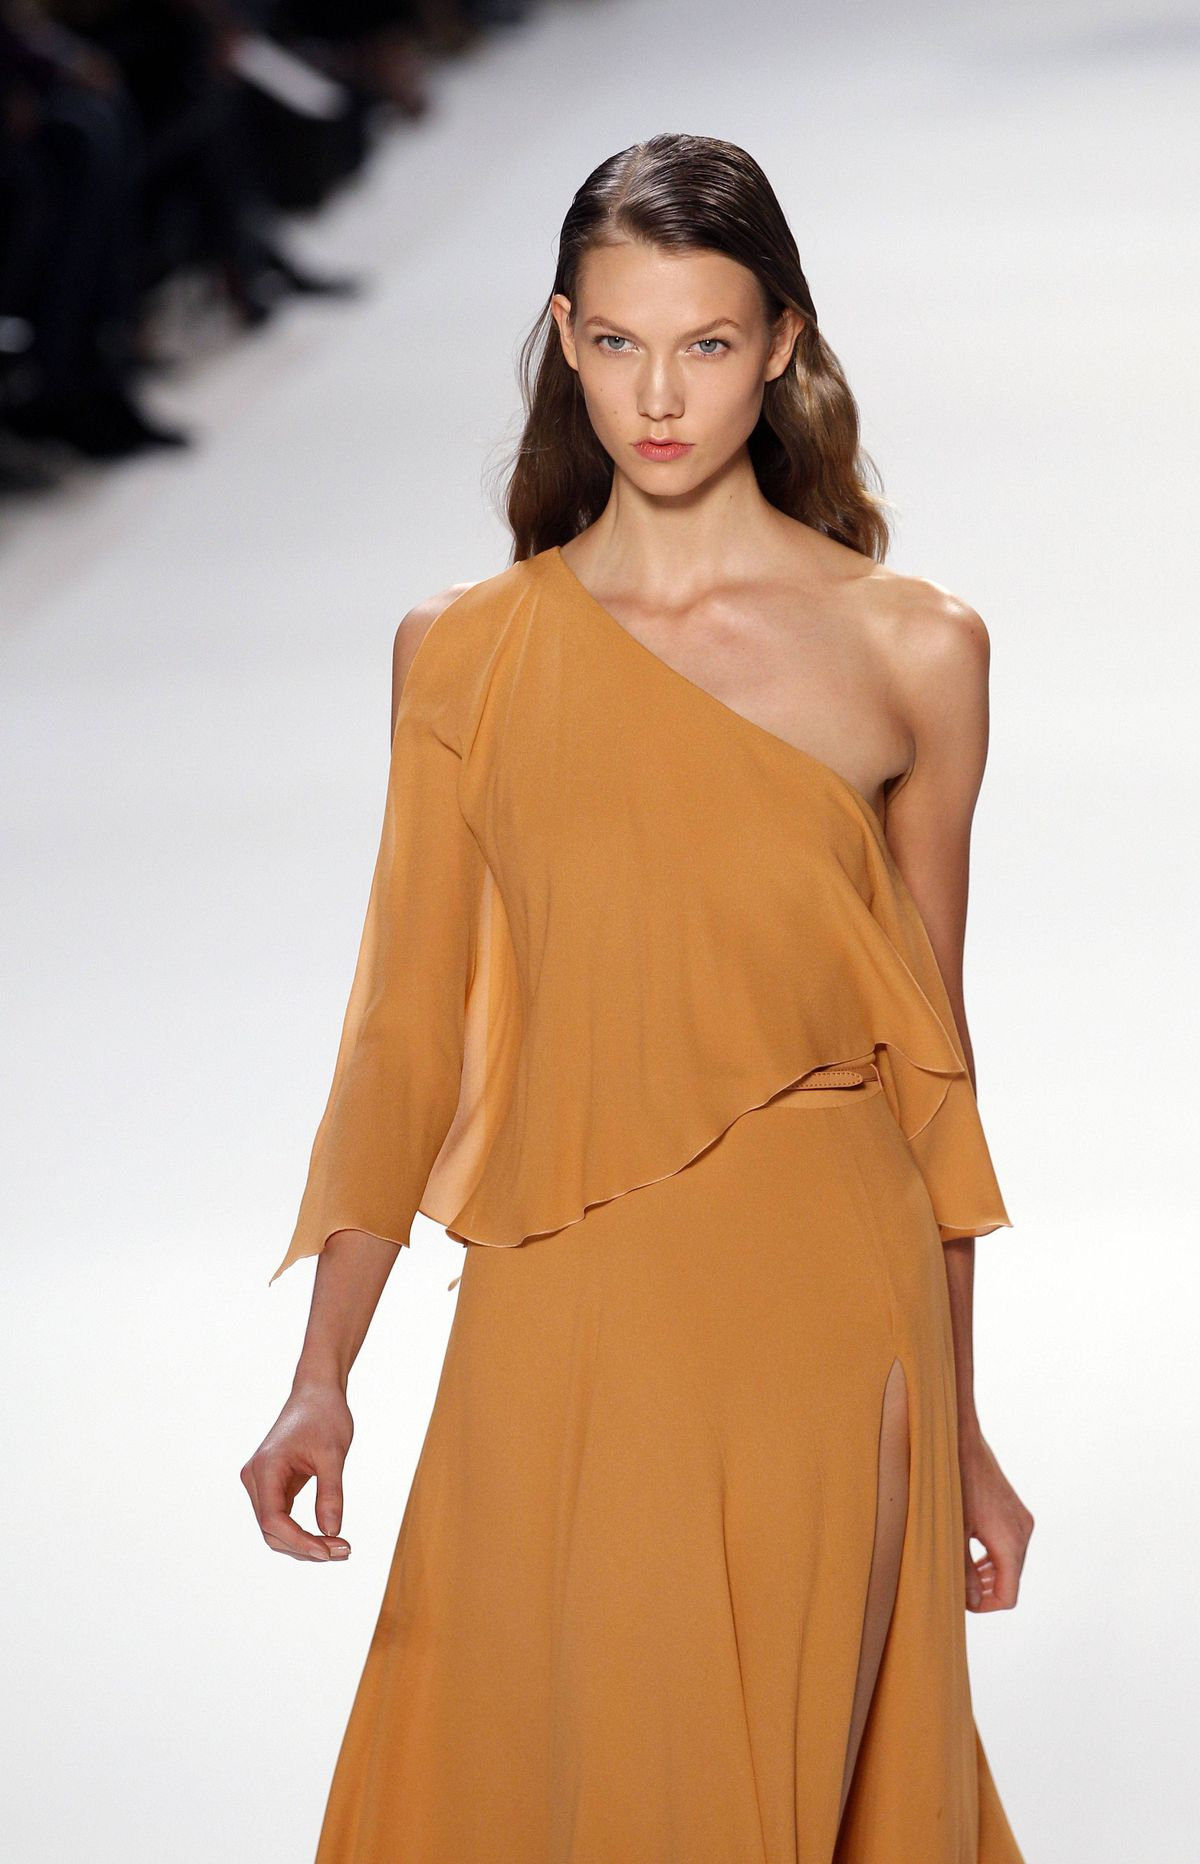 Saab did offer some daywear options in pleated crepe georgette, chiffon and lace, sans sparkle. The jumpsuits were extra flowy. Model Karlie Kloss is wearing a one-shouldered dress.